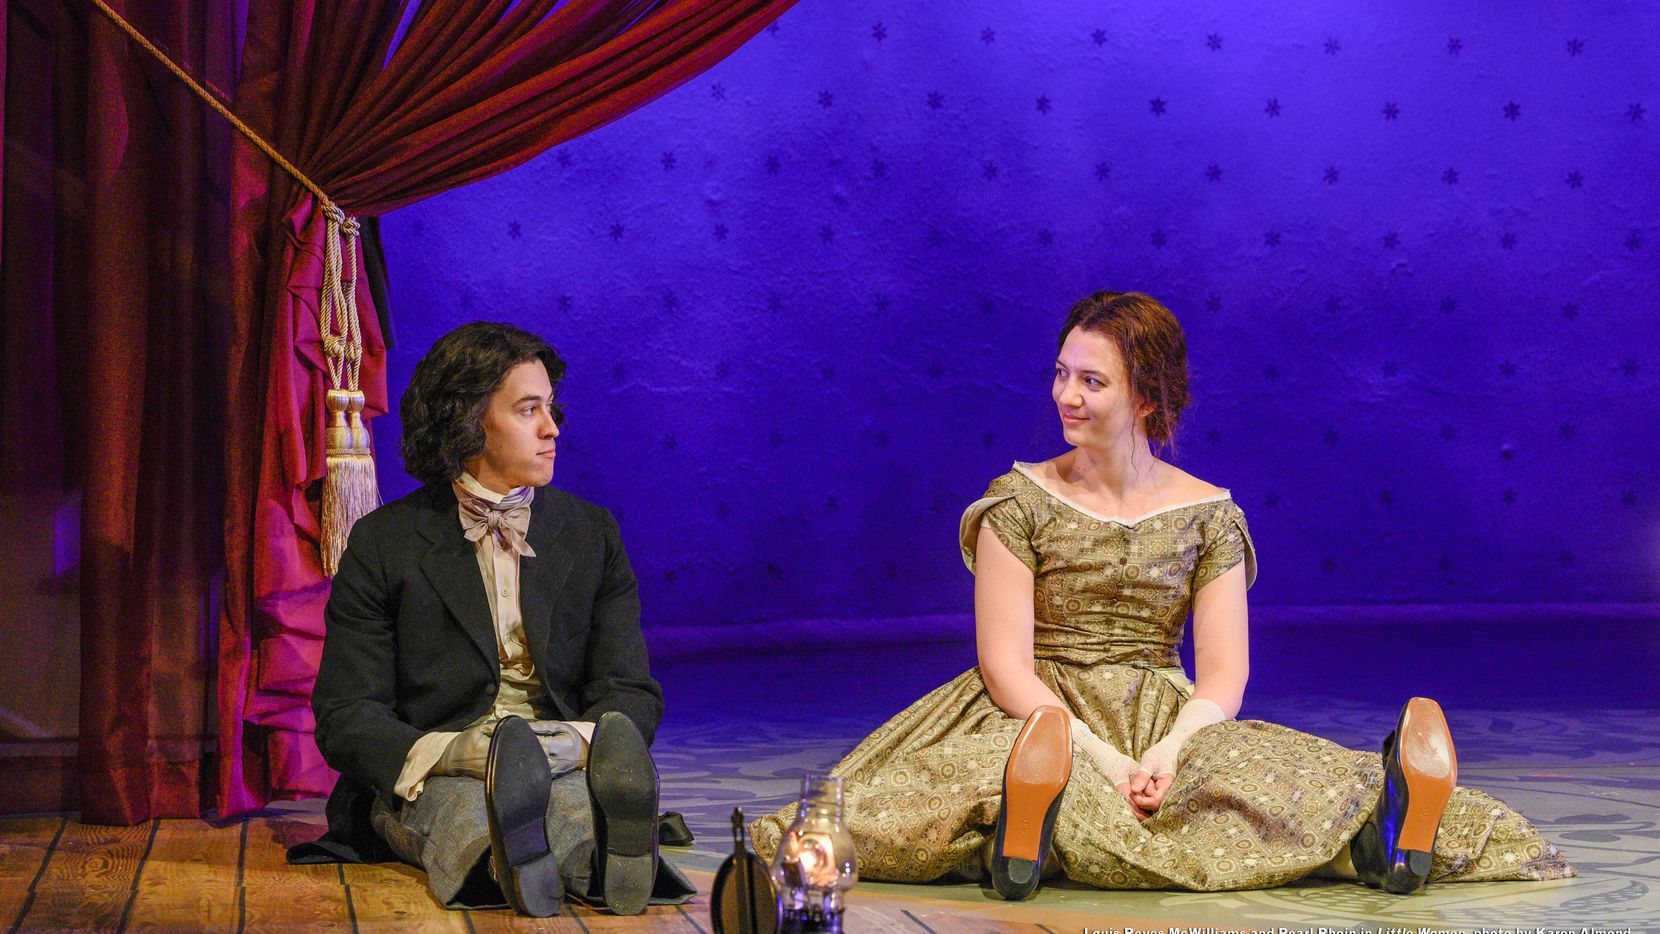 "Louis Reyes McWilliams as Laurie and Pearl Rhein as Jo in Dallas Theater Center's production of ""Little Women."" The feminist adaptation of Louisa May Alcott's classic 19th century novel by Kate Hamill runs through March 1 at the Kalita Humphreys Theater."